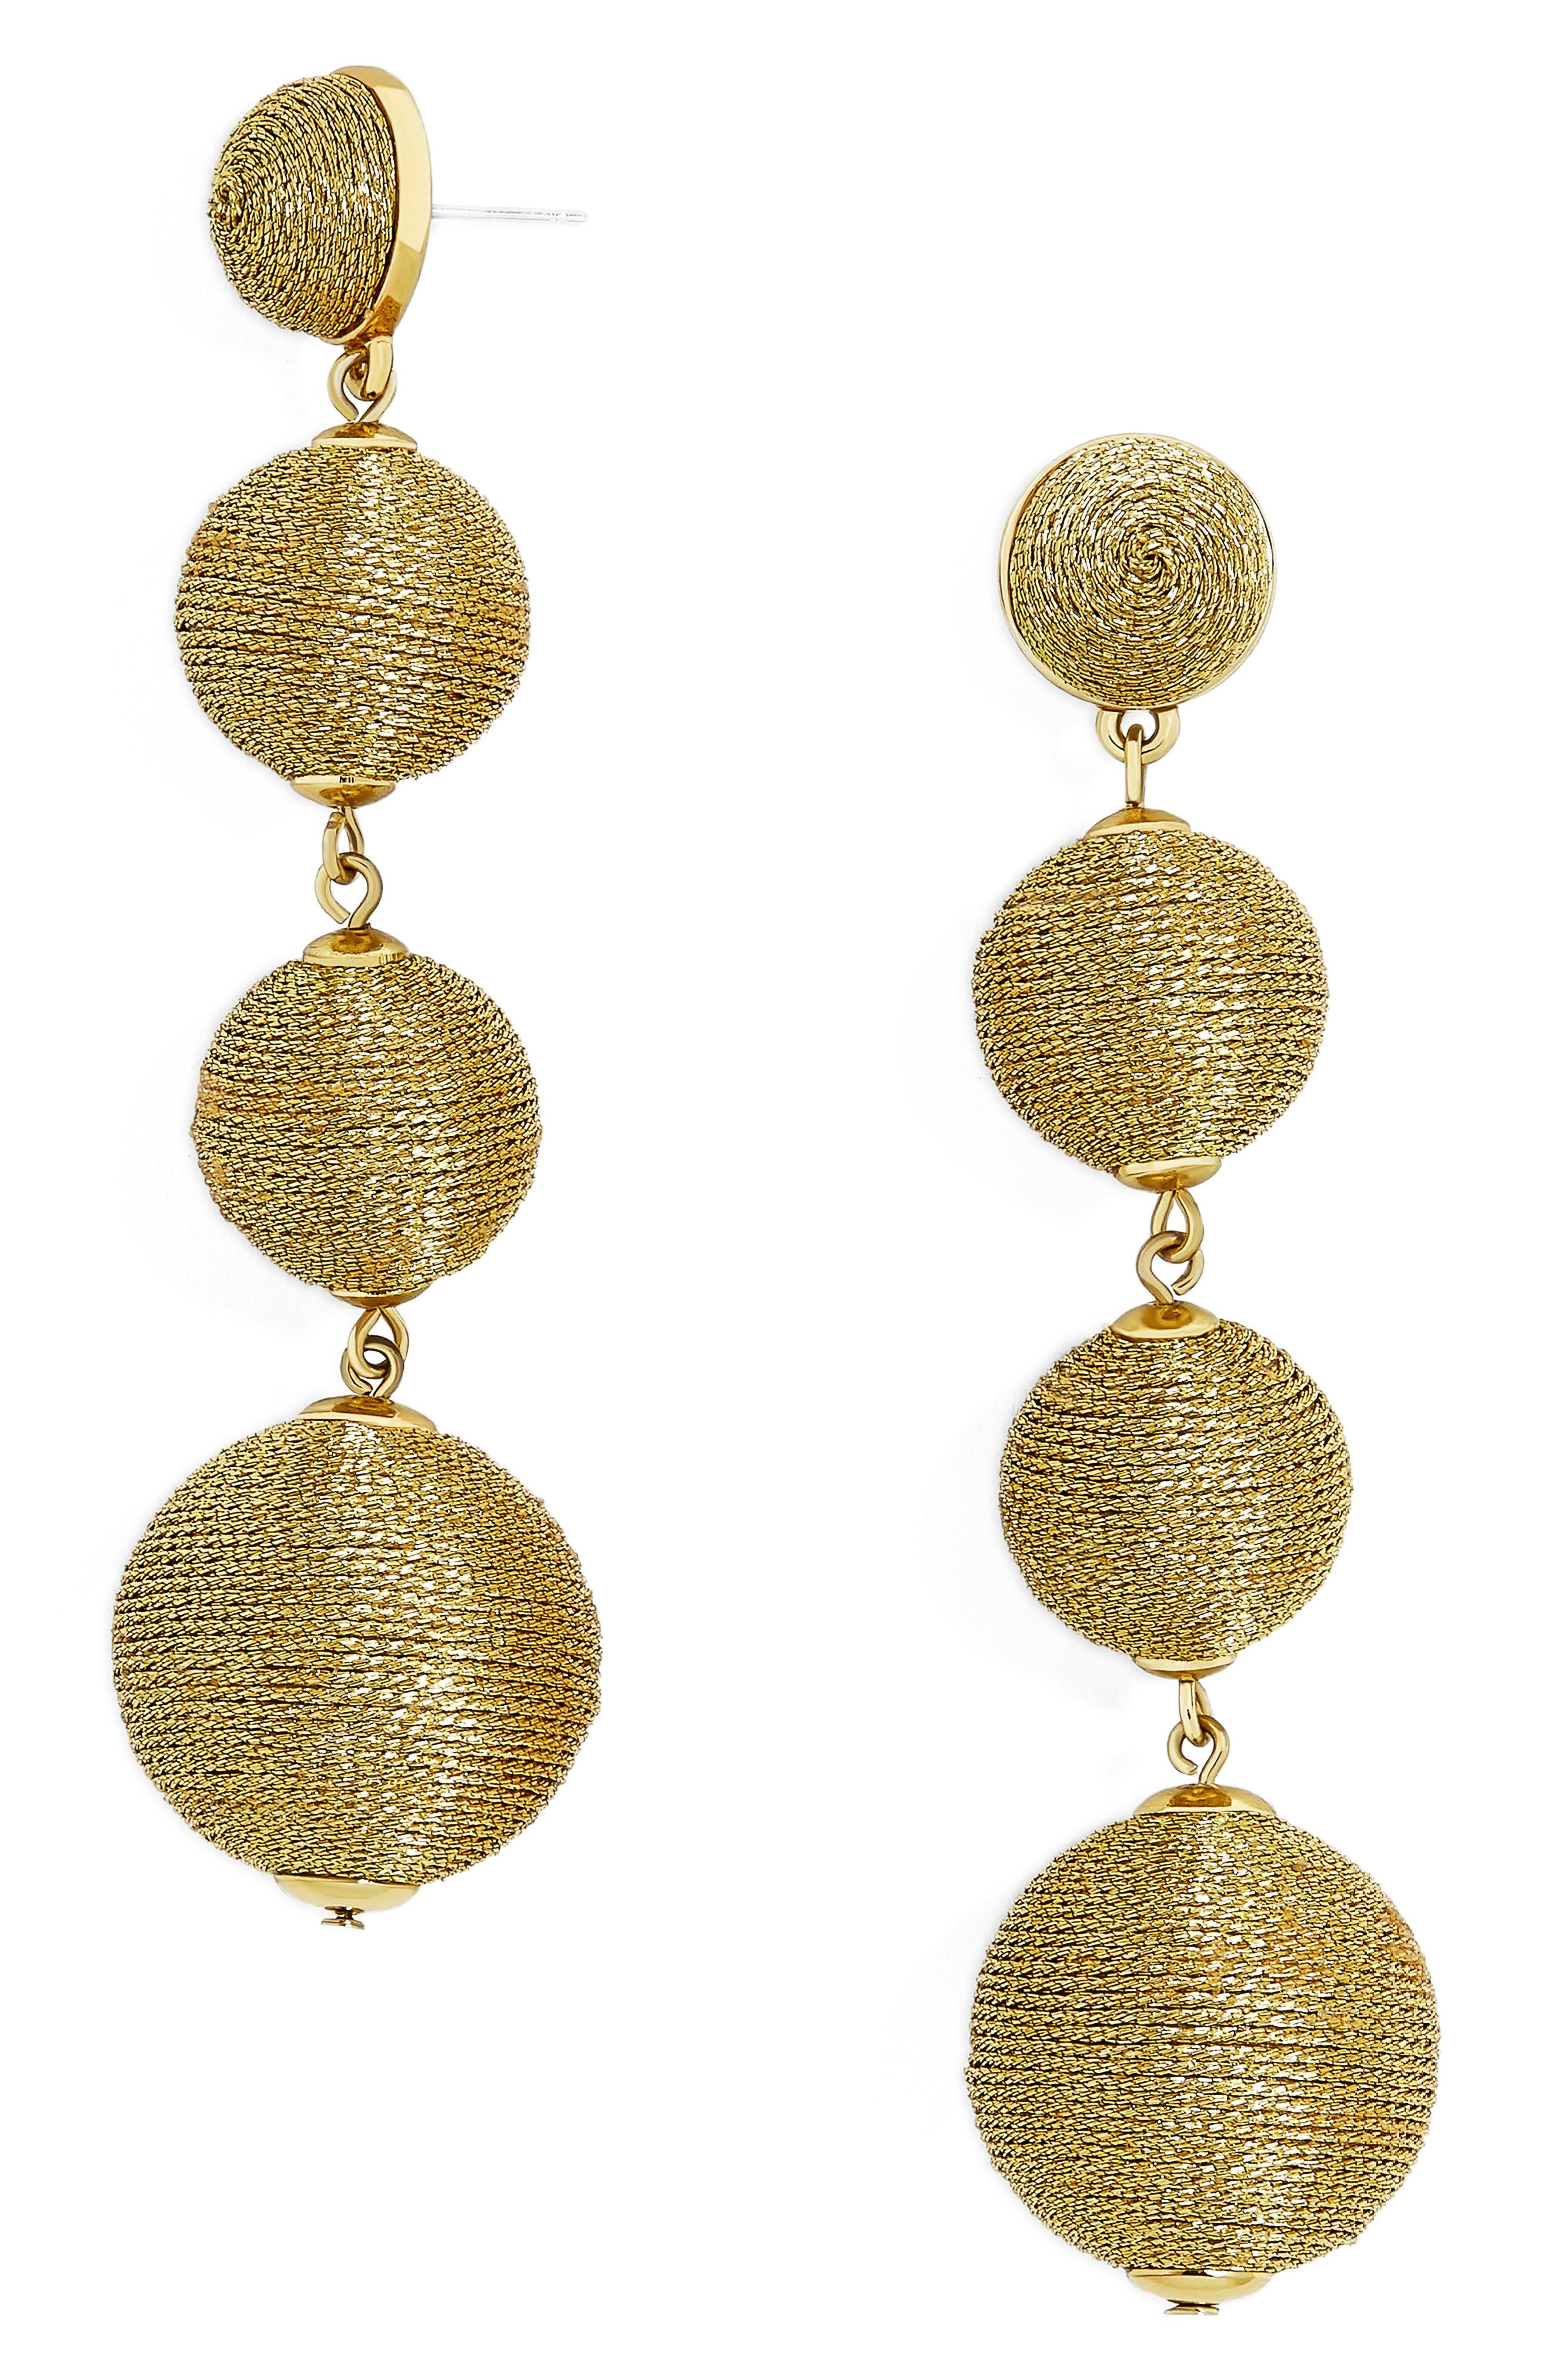 Criselda Ball Shoulder Duster Earrings,                         Main,                         color, 710